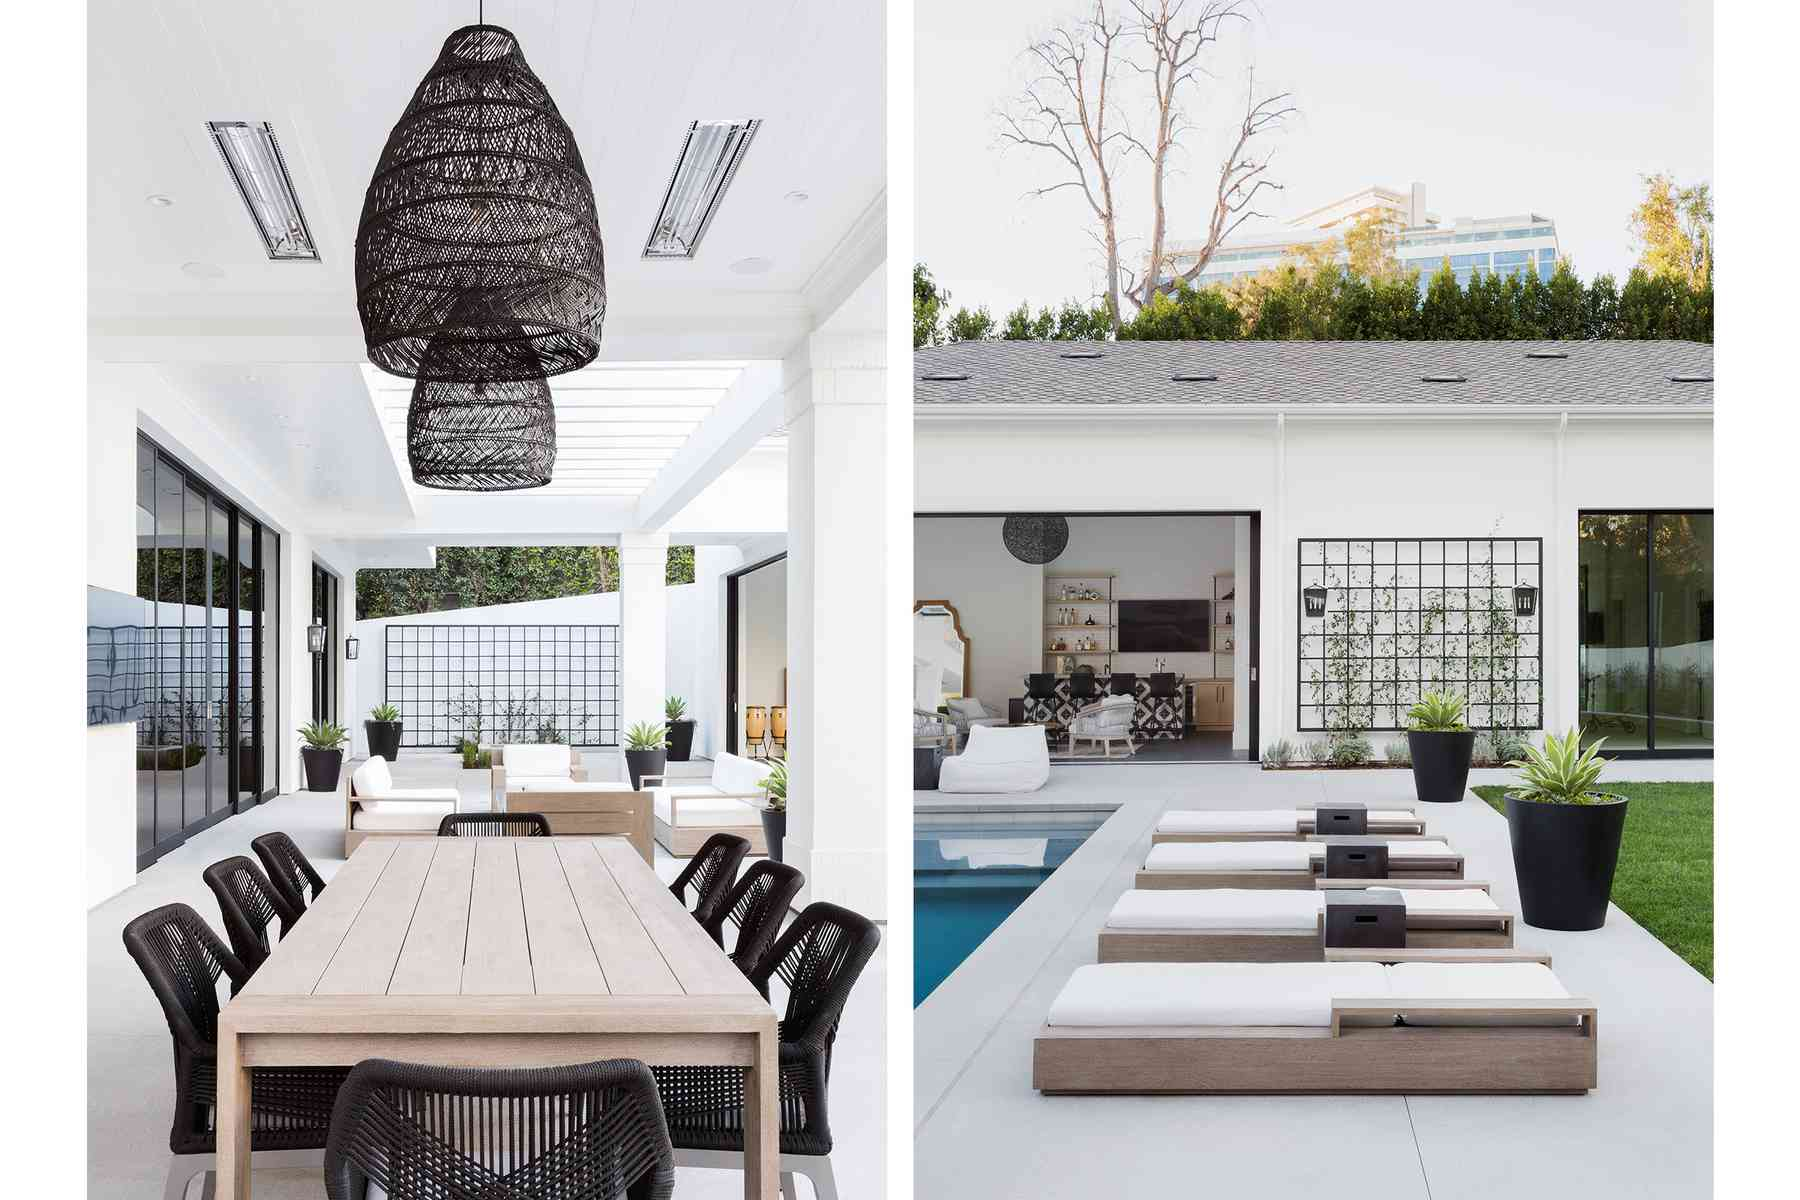 Outdoor space with dining table and metal wall art.